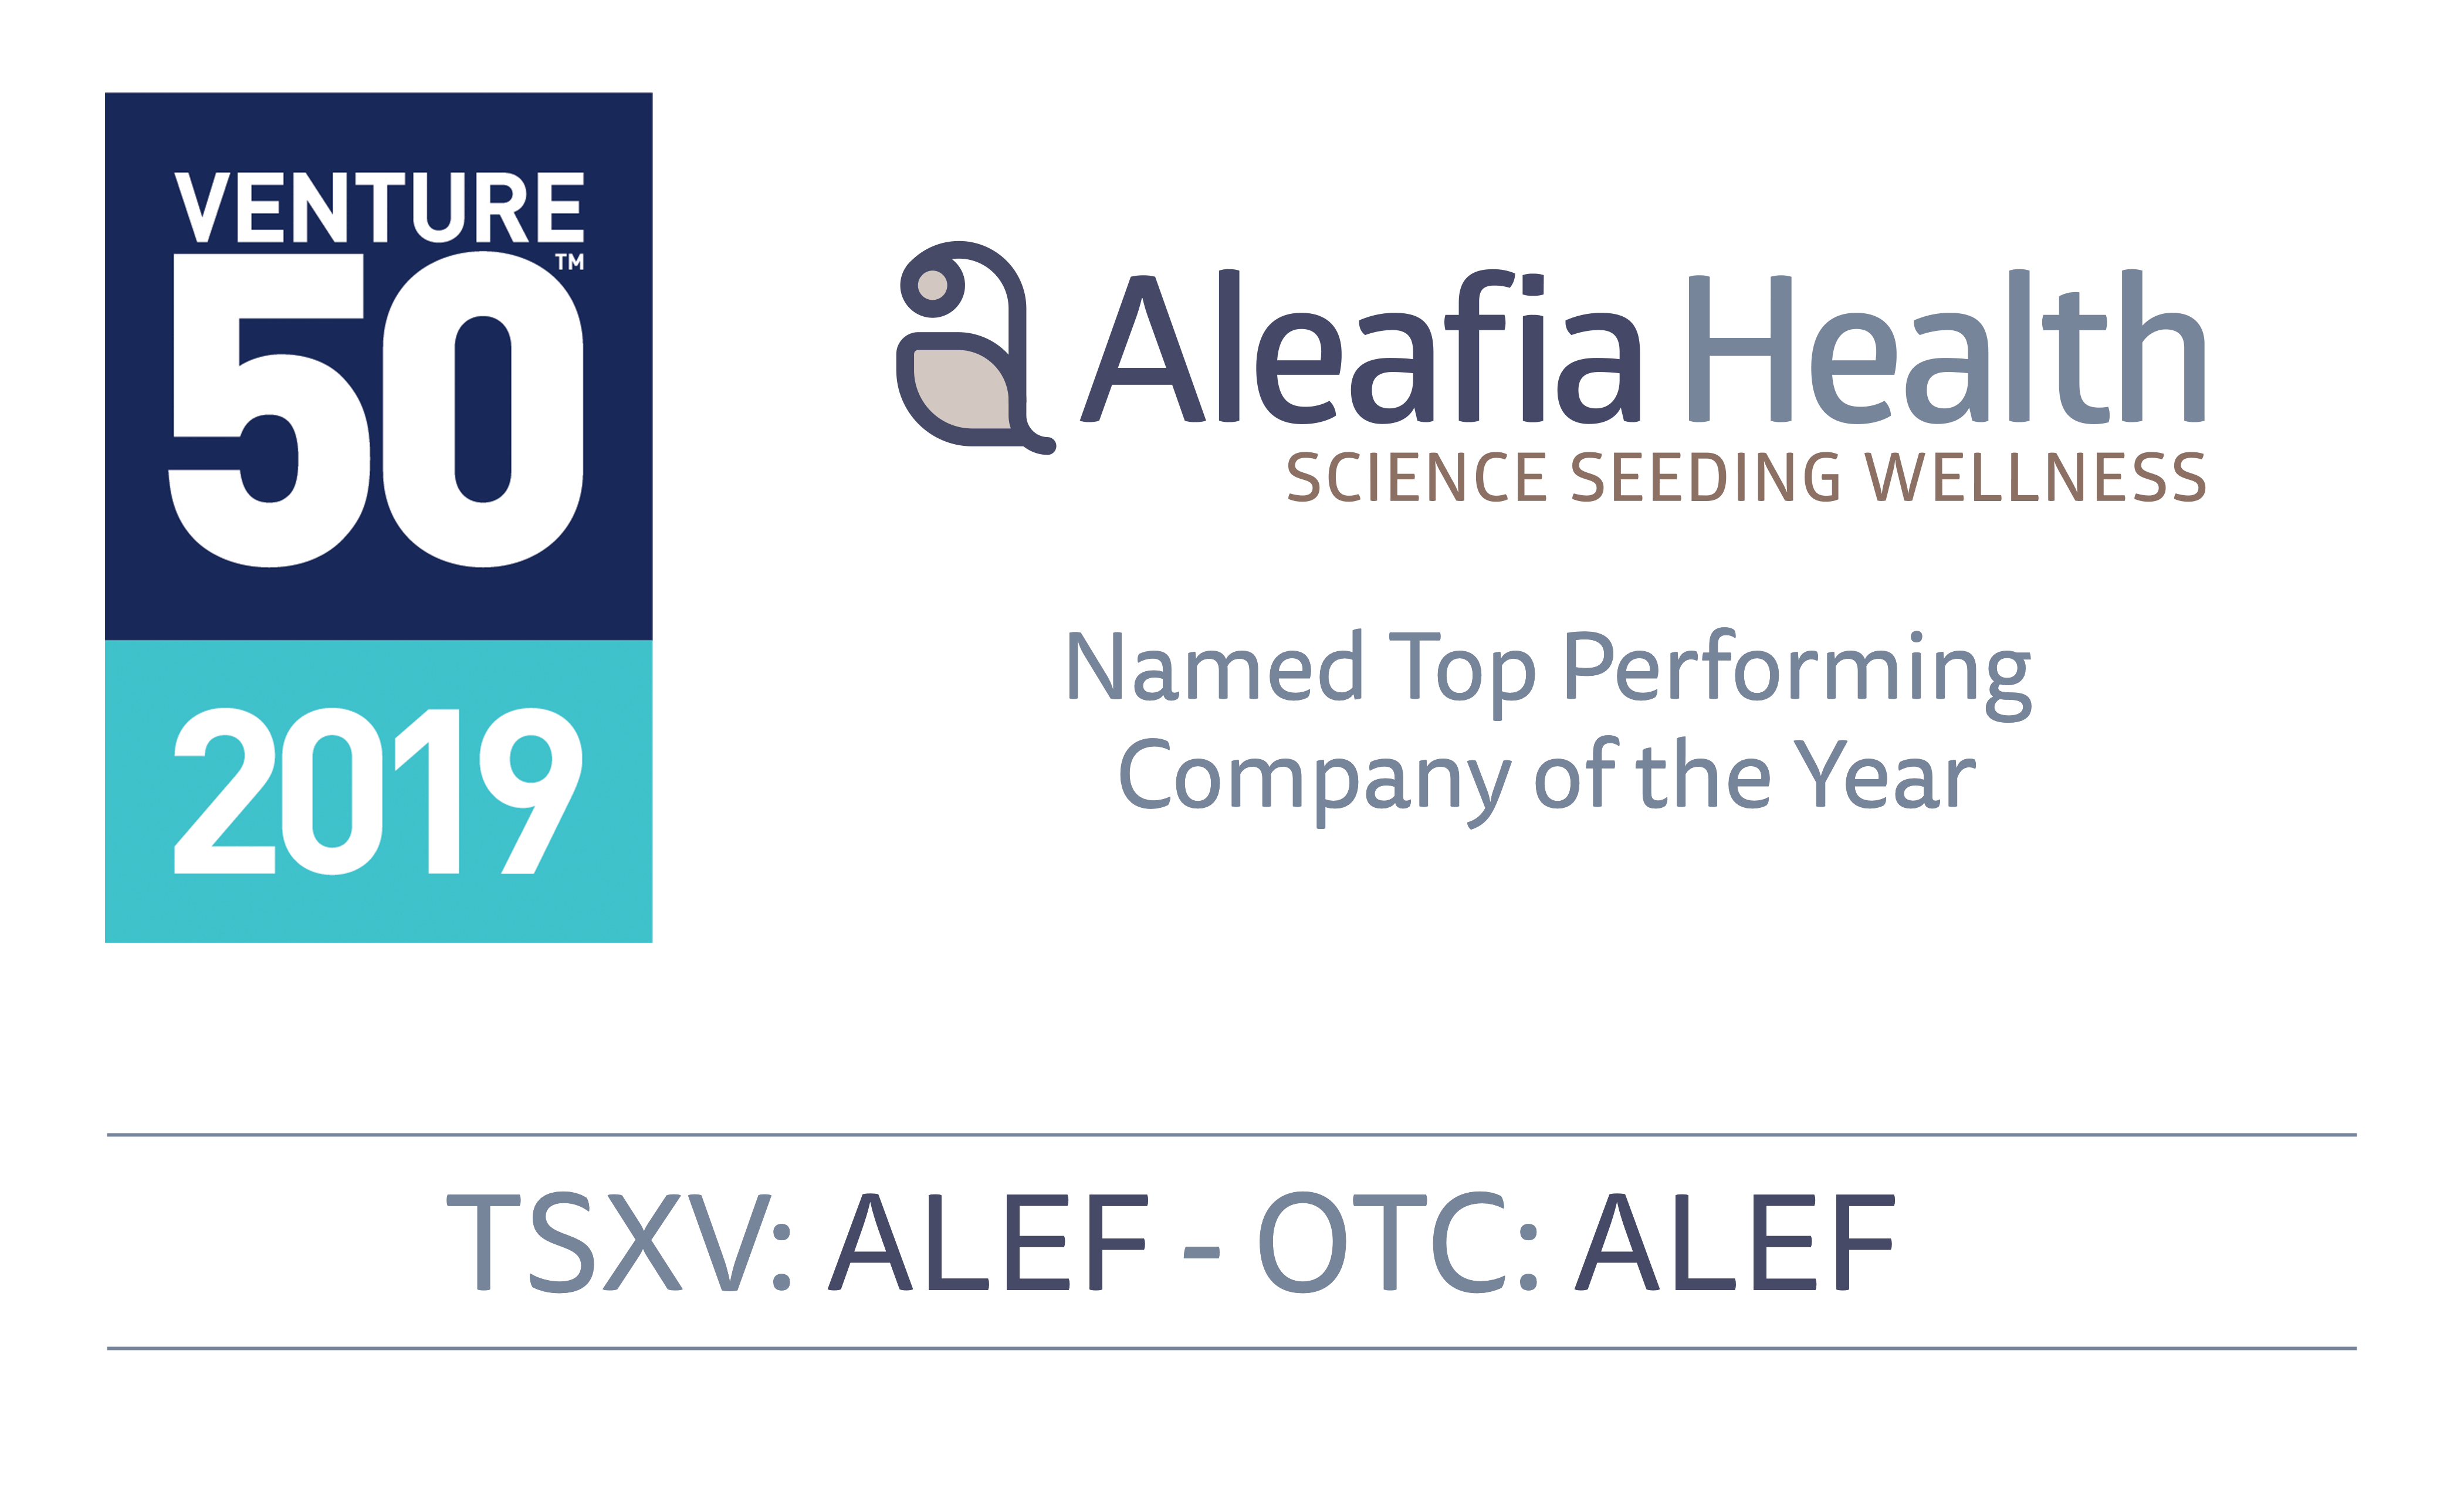 Aleafia Health Named Top Performing Company of the Year for TSX Venture 50